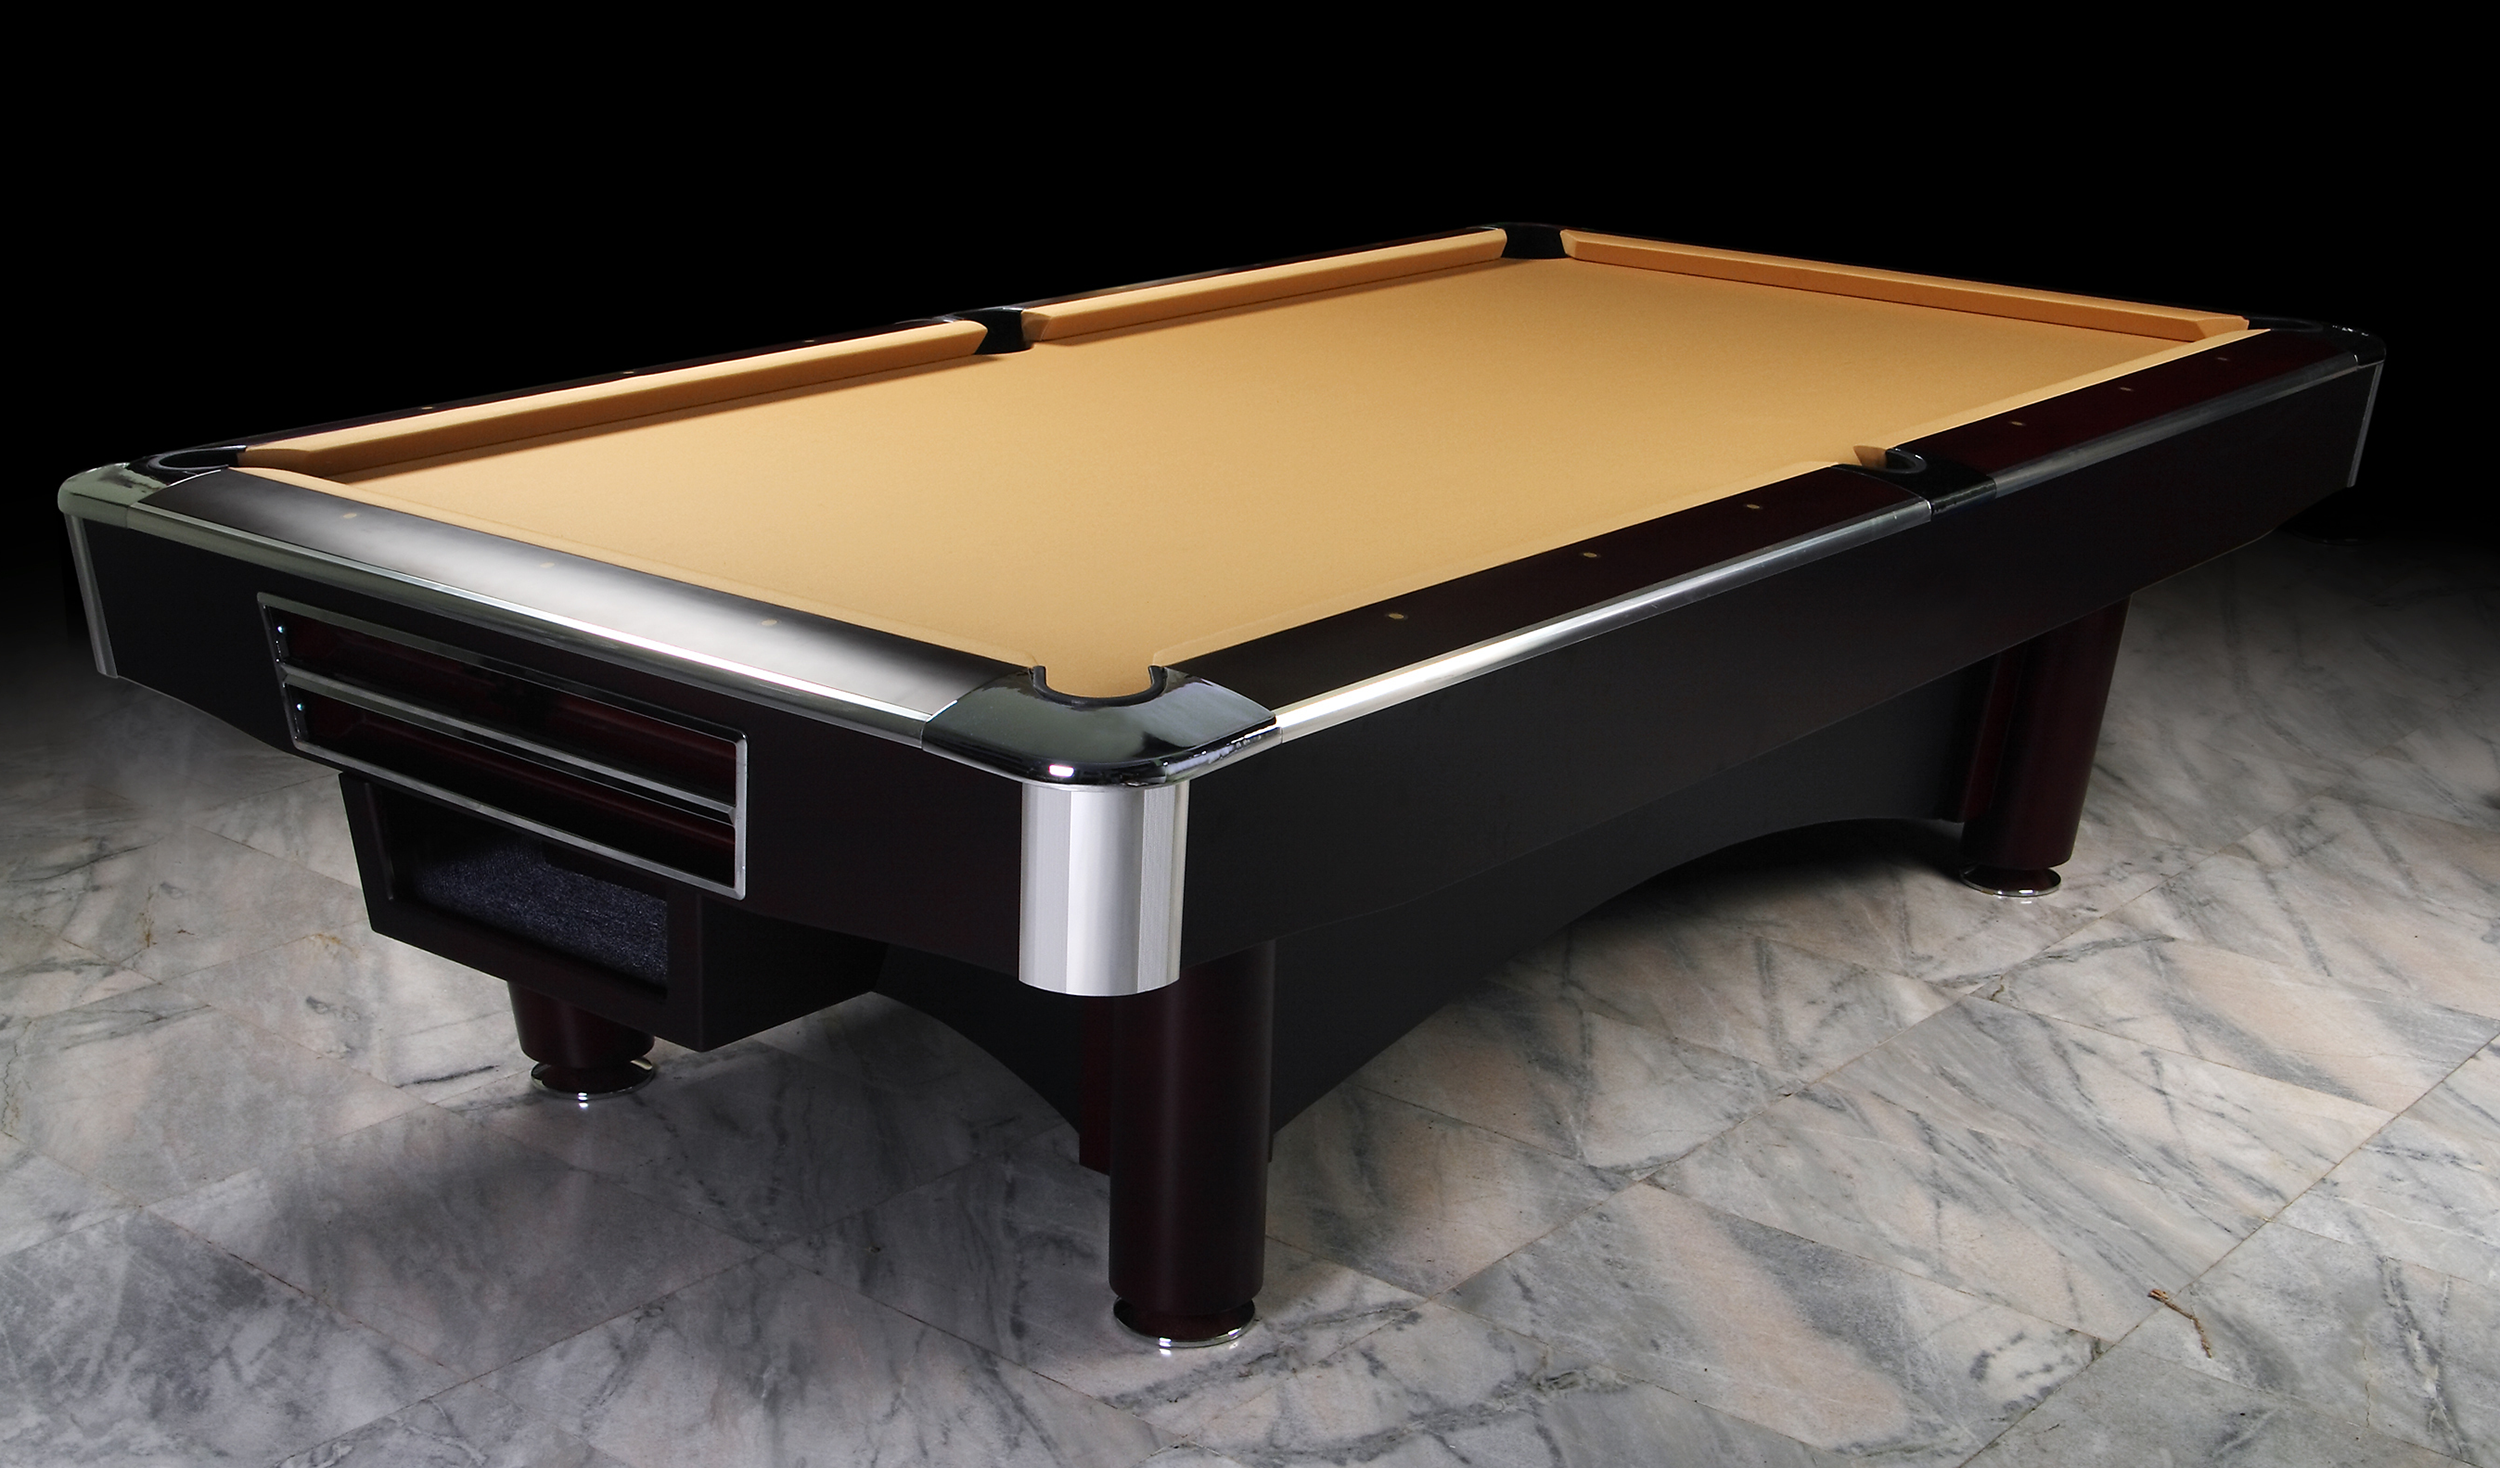 Gallery Professional Billiards Atlanta - Pool table movers atlanta ga